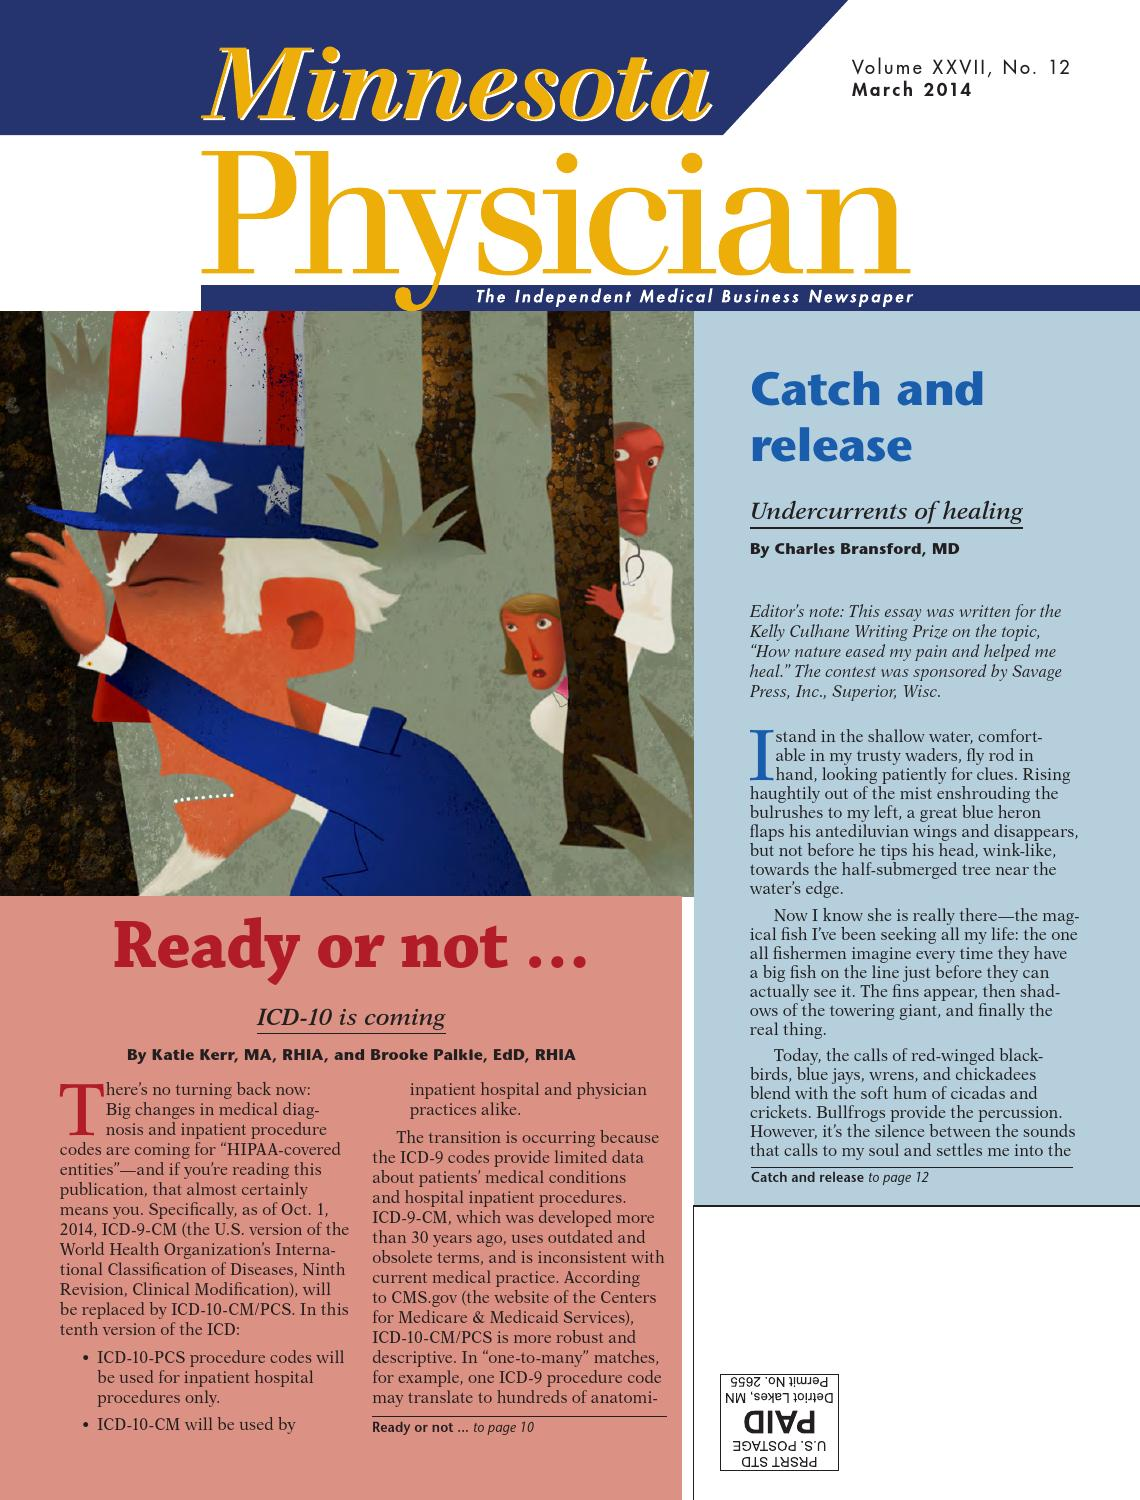 Minnesota Physician March 2014 by Minnesota Physician